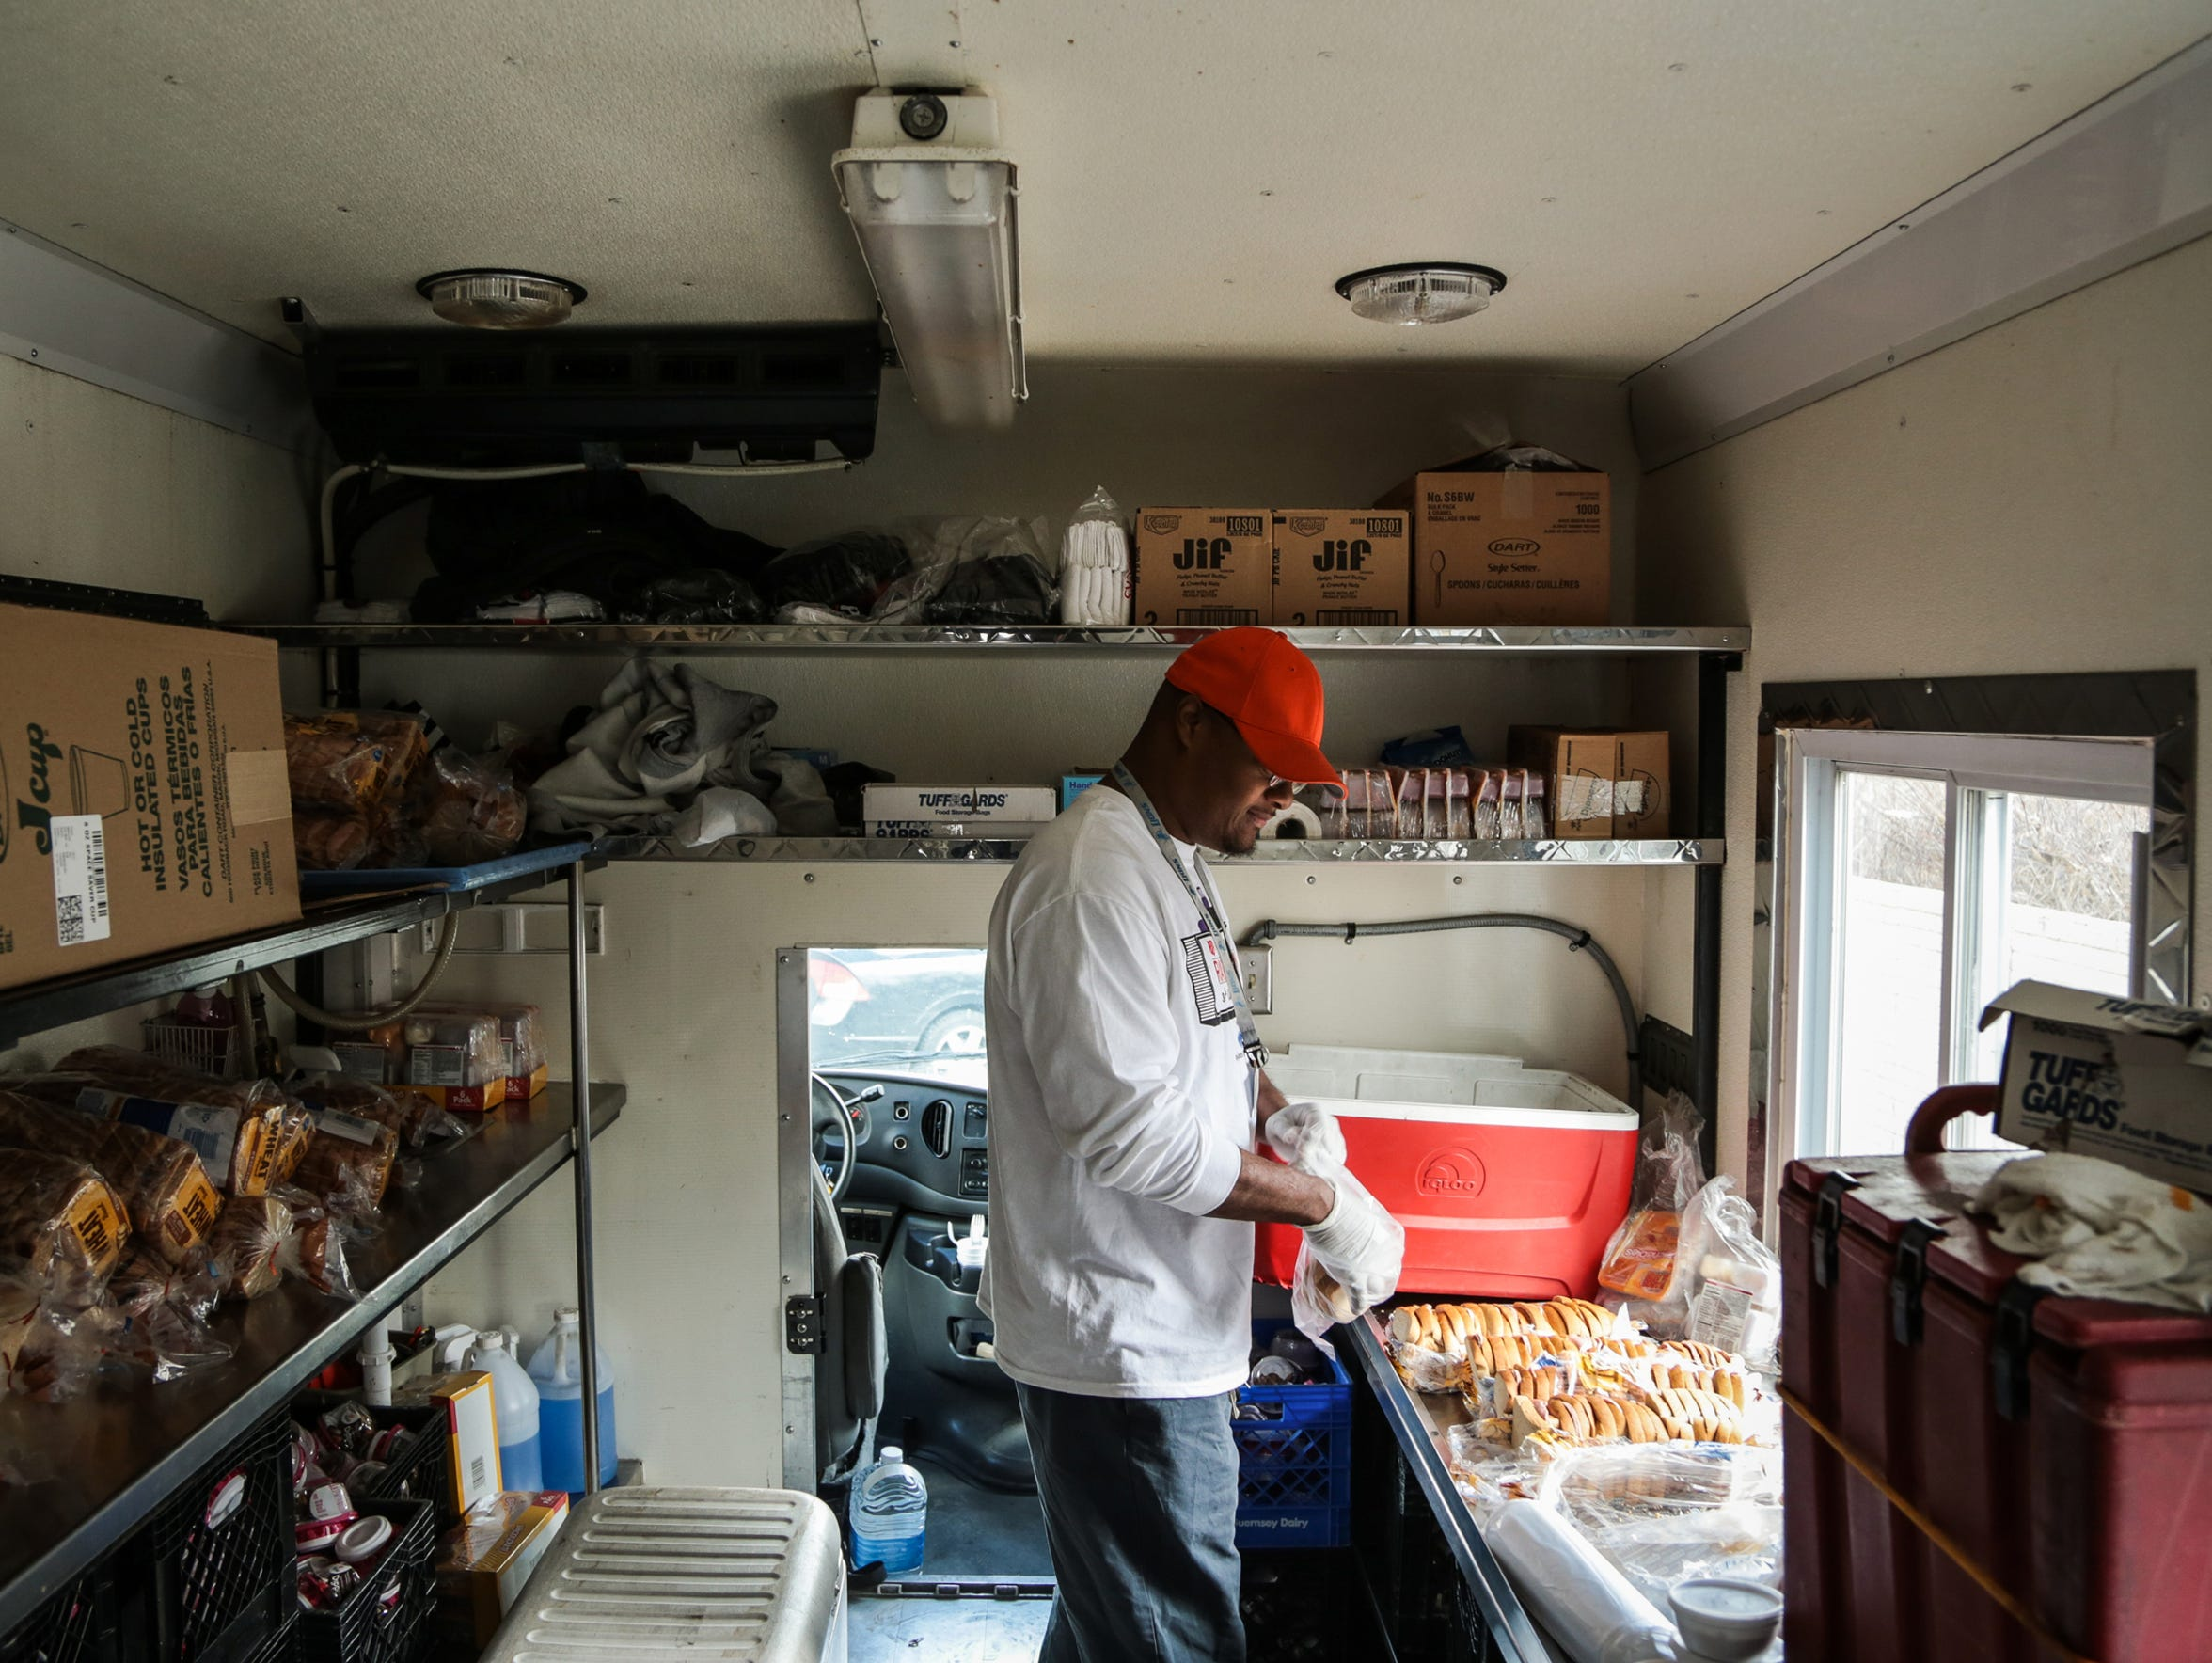 Lannell Smith, 43, of Detroit prepares sandwiches on